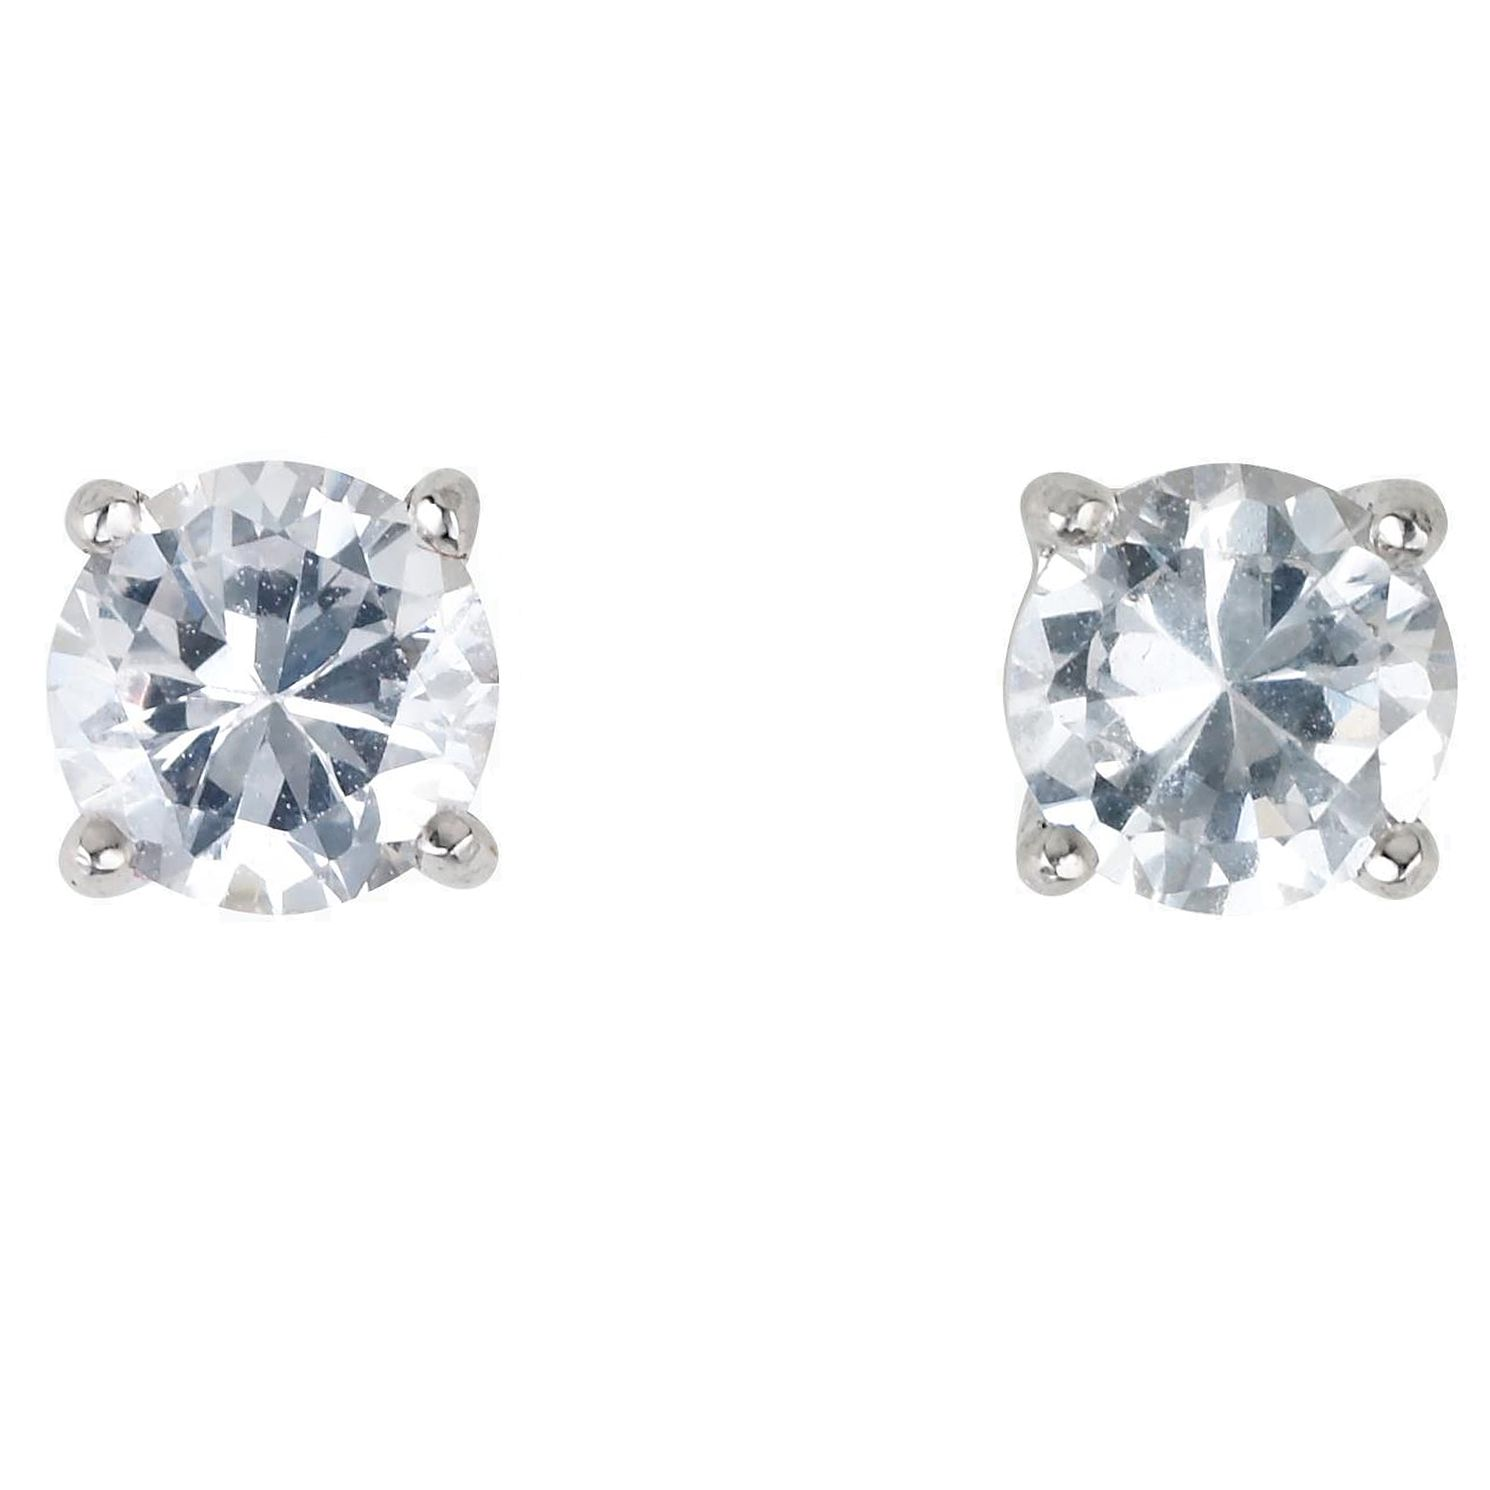 18ct White Gold 0.66ct Diamond H-I SI2 Solitaire Earrings - Product number 2541785